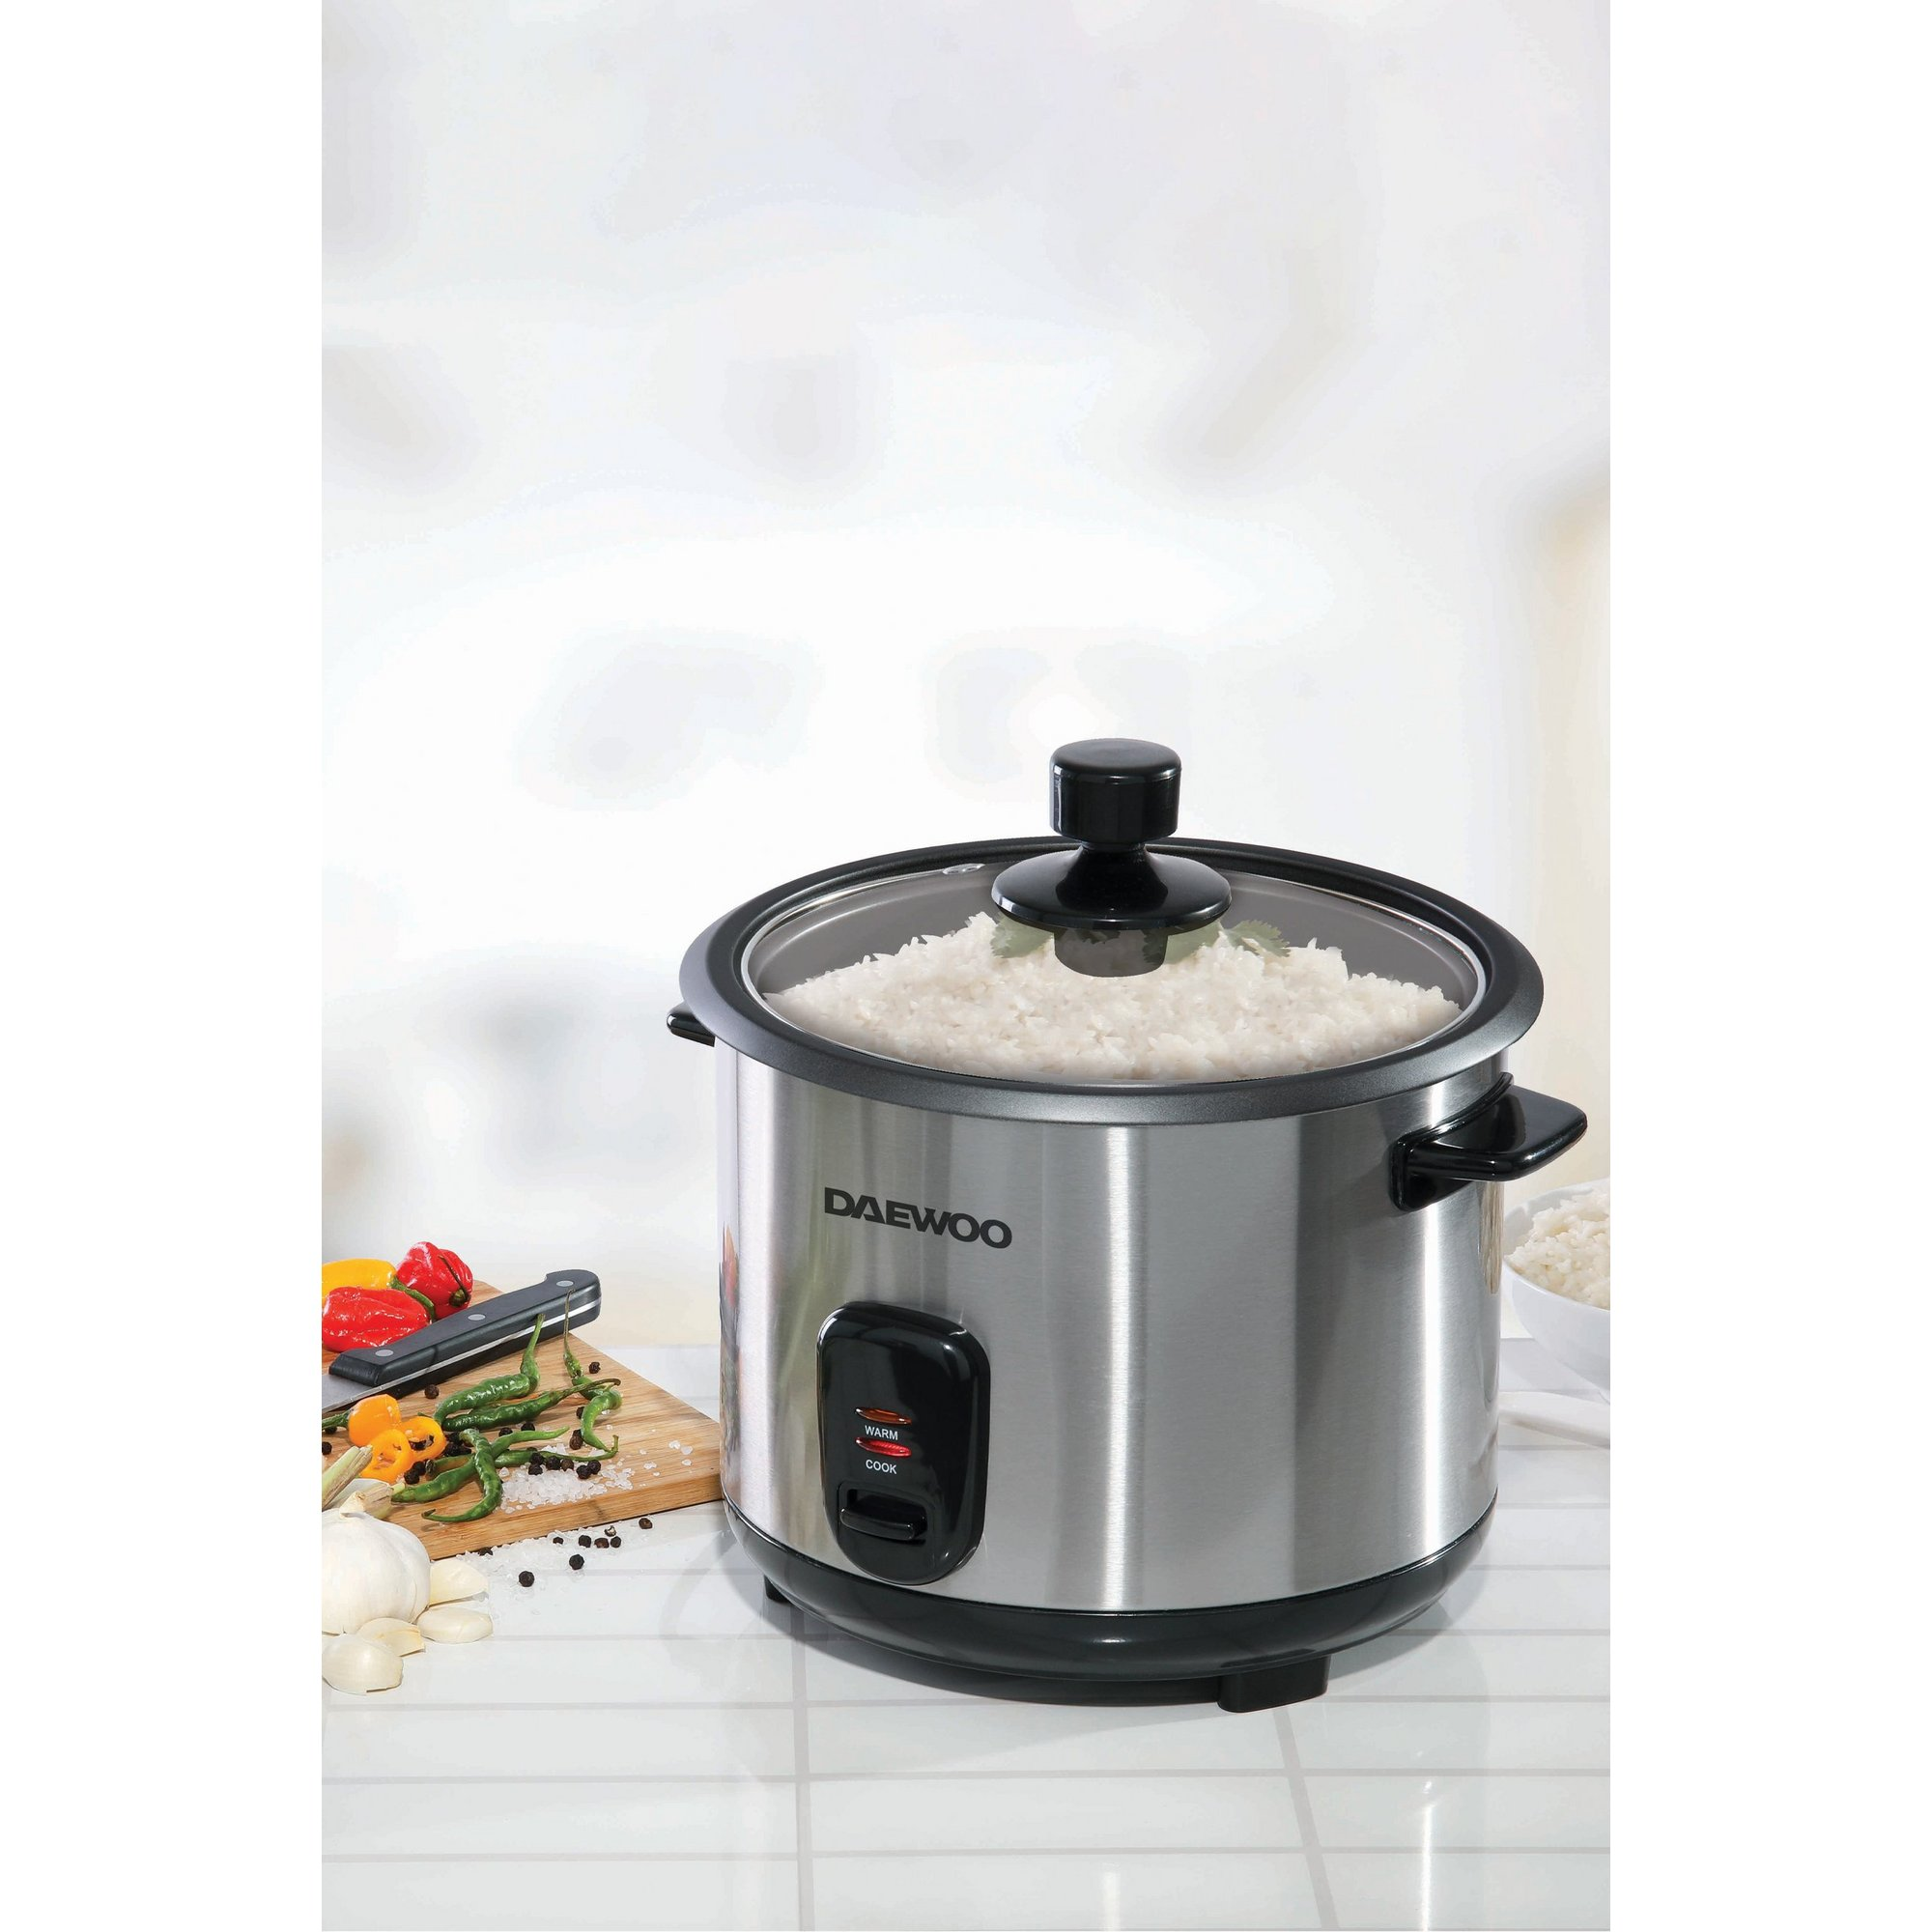 Image of Daewoo 1.8 Litre Rice Cooker